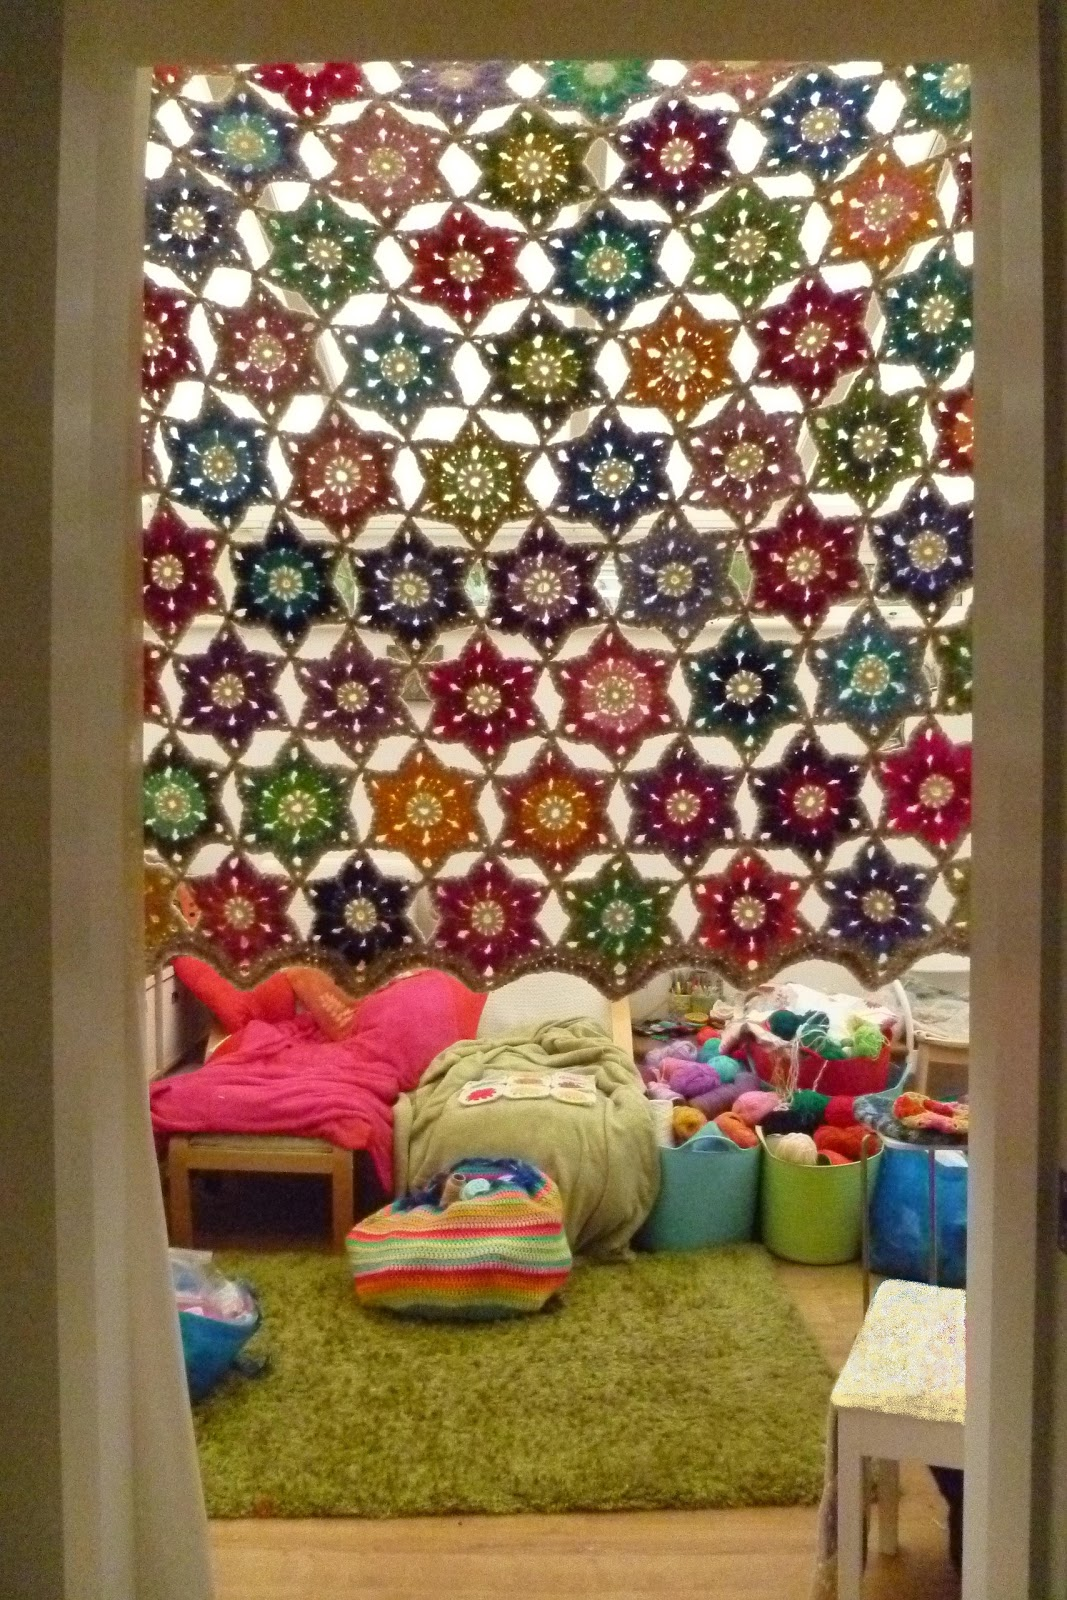 Crochet Flower Curtain Free Pattern : African Flowers, Crochet Granny Squares and colorful ...